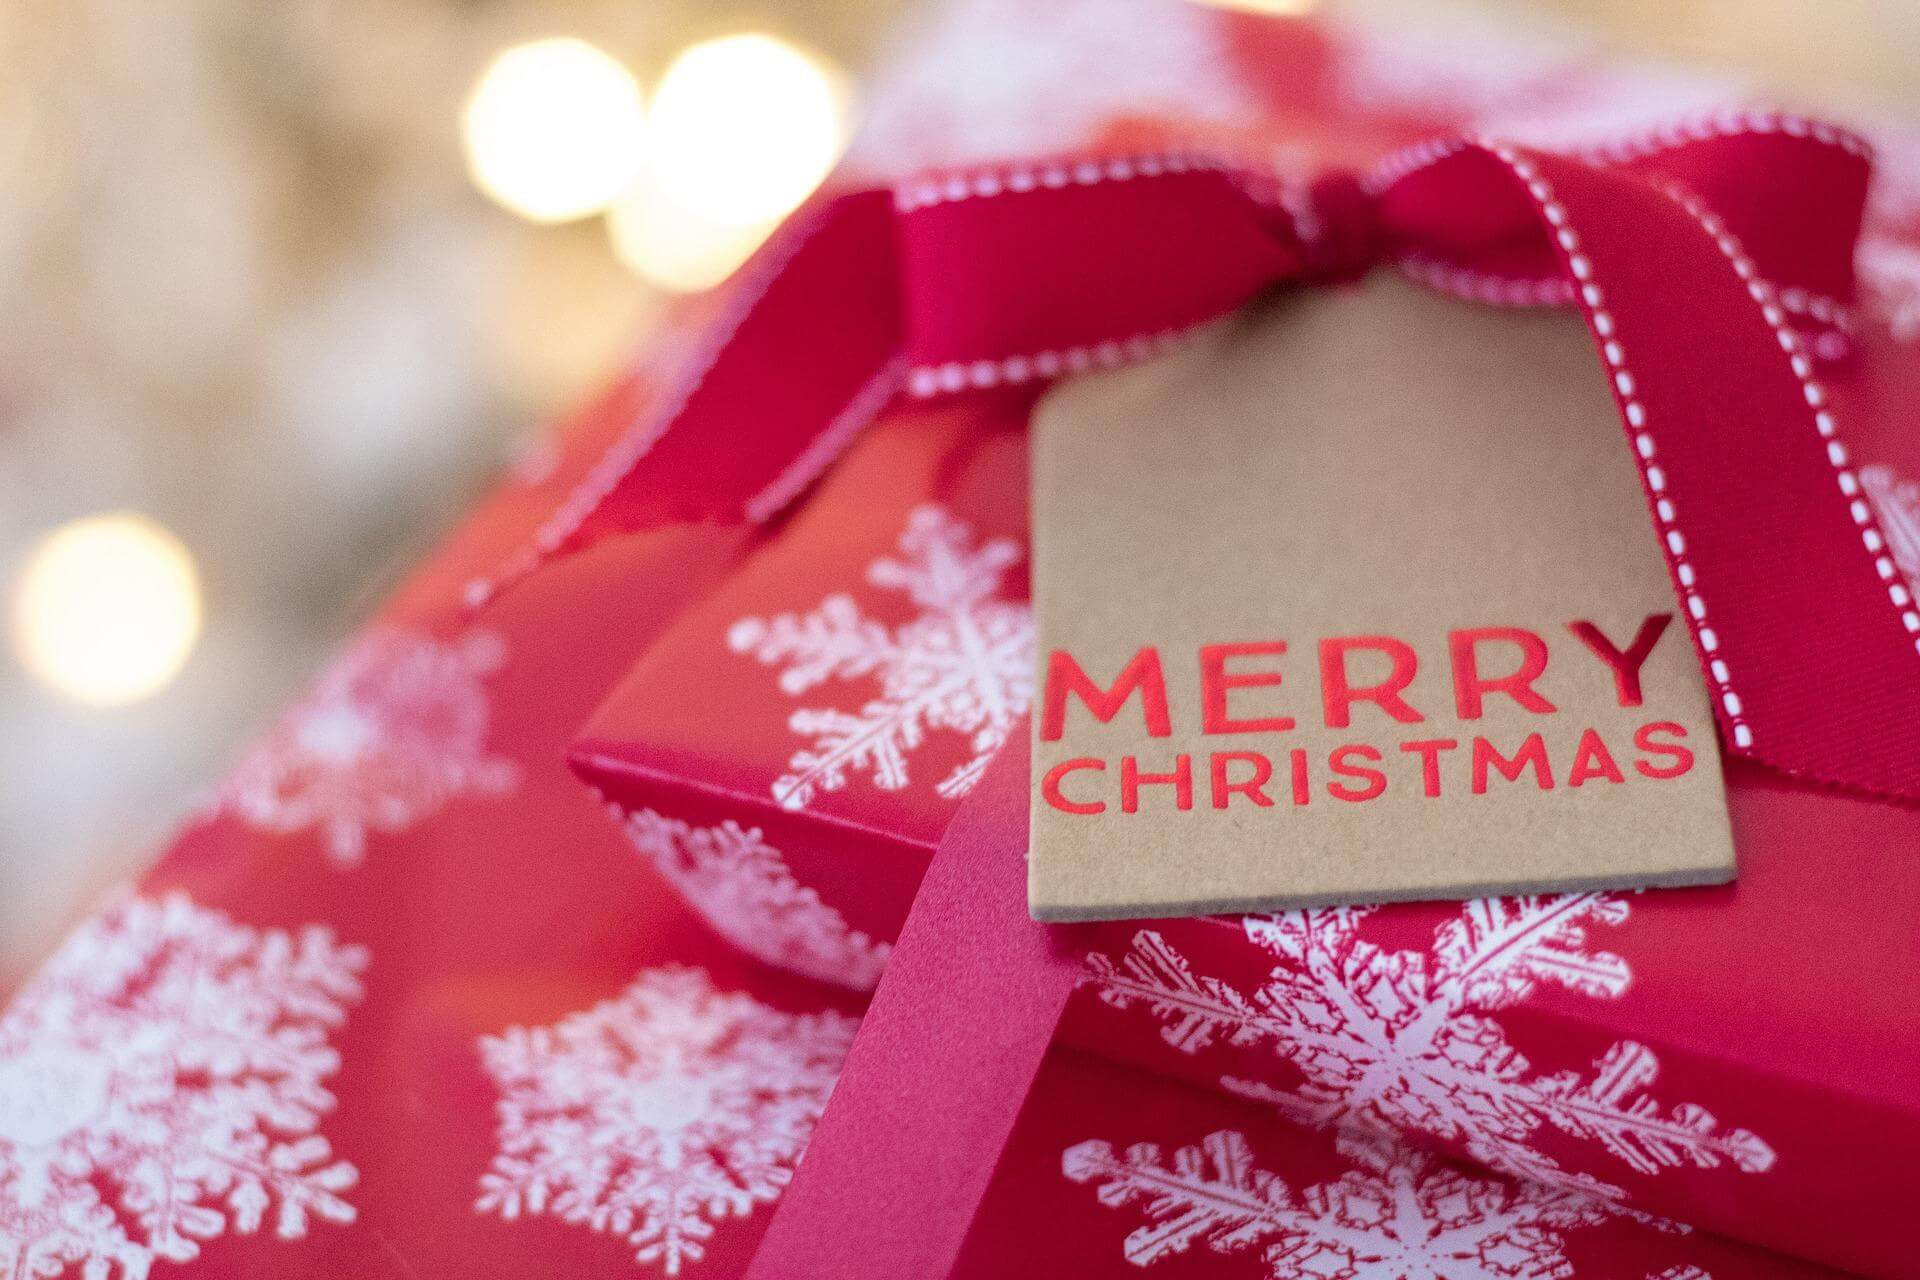 JTL's Christmas Gifting Guide for the Women in Your Life